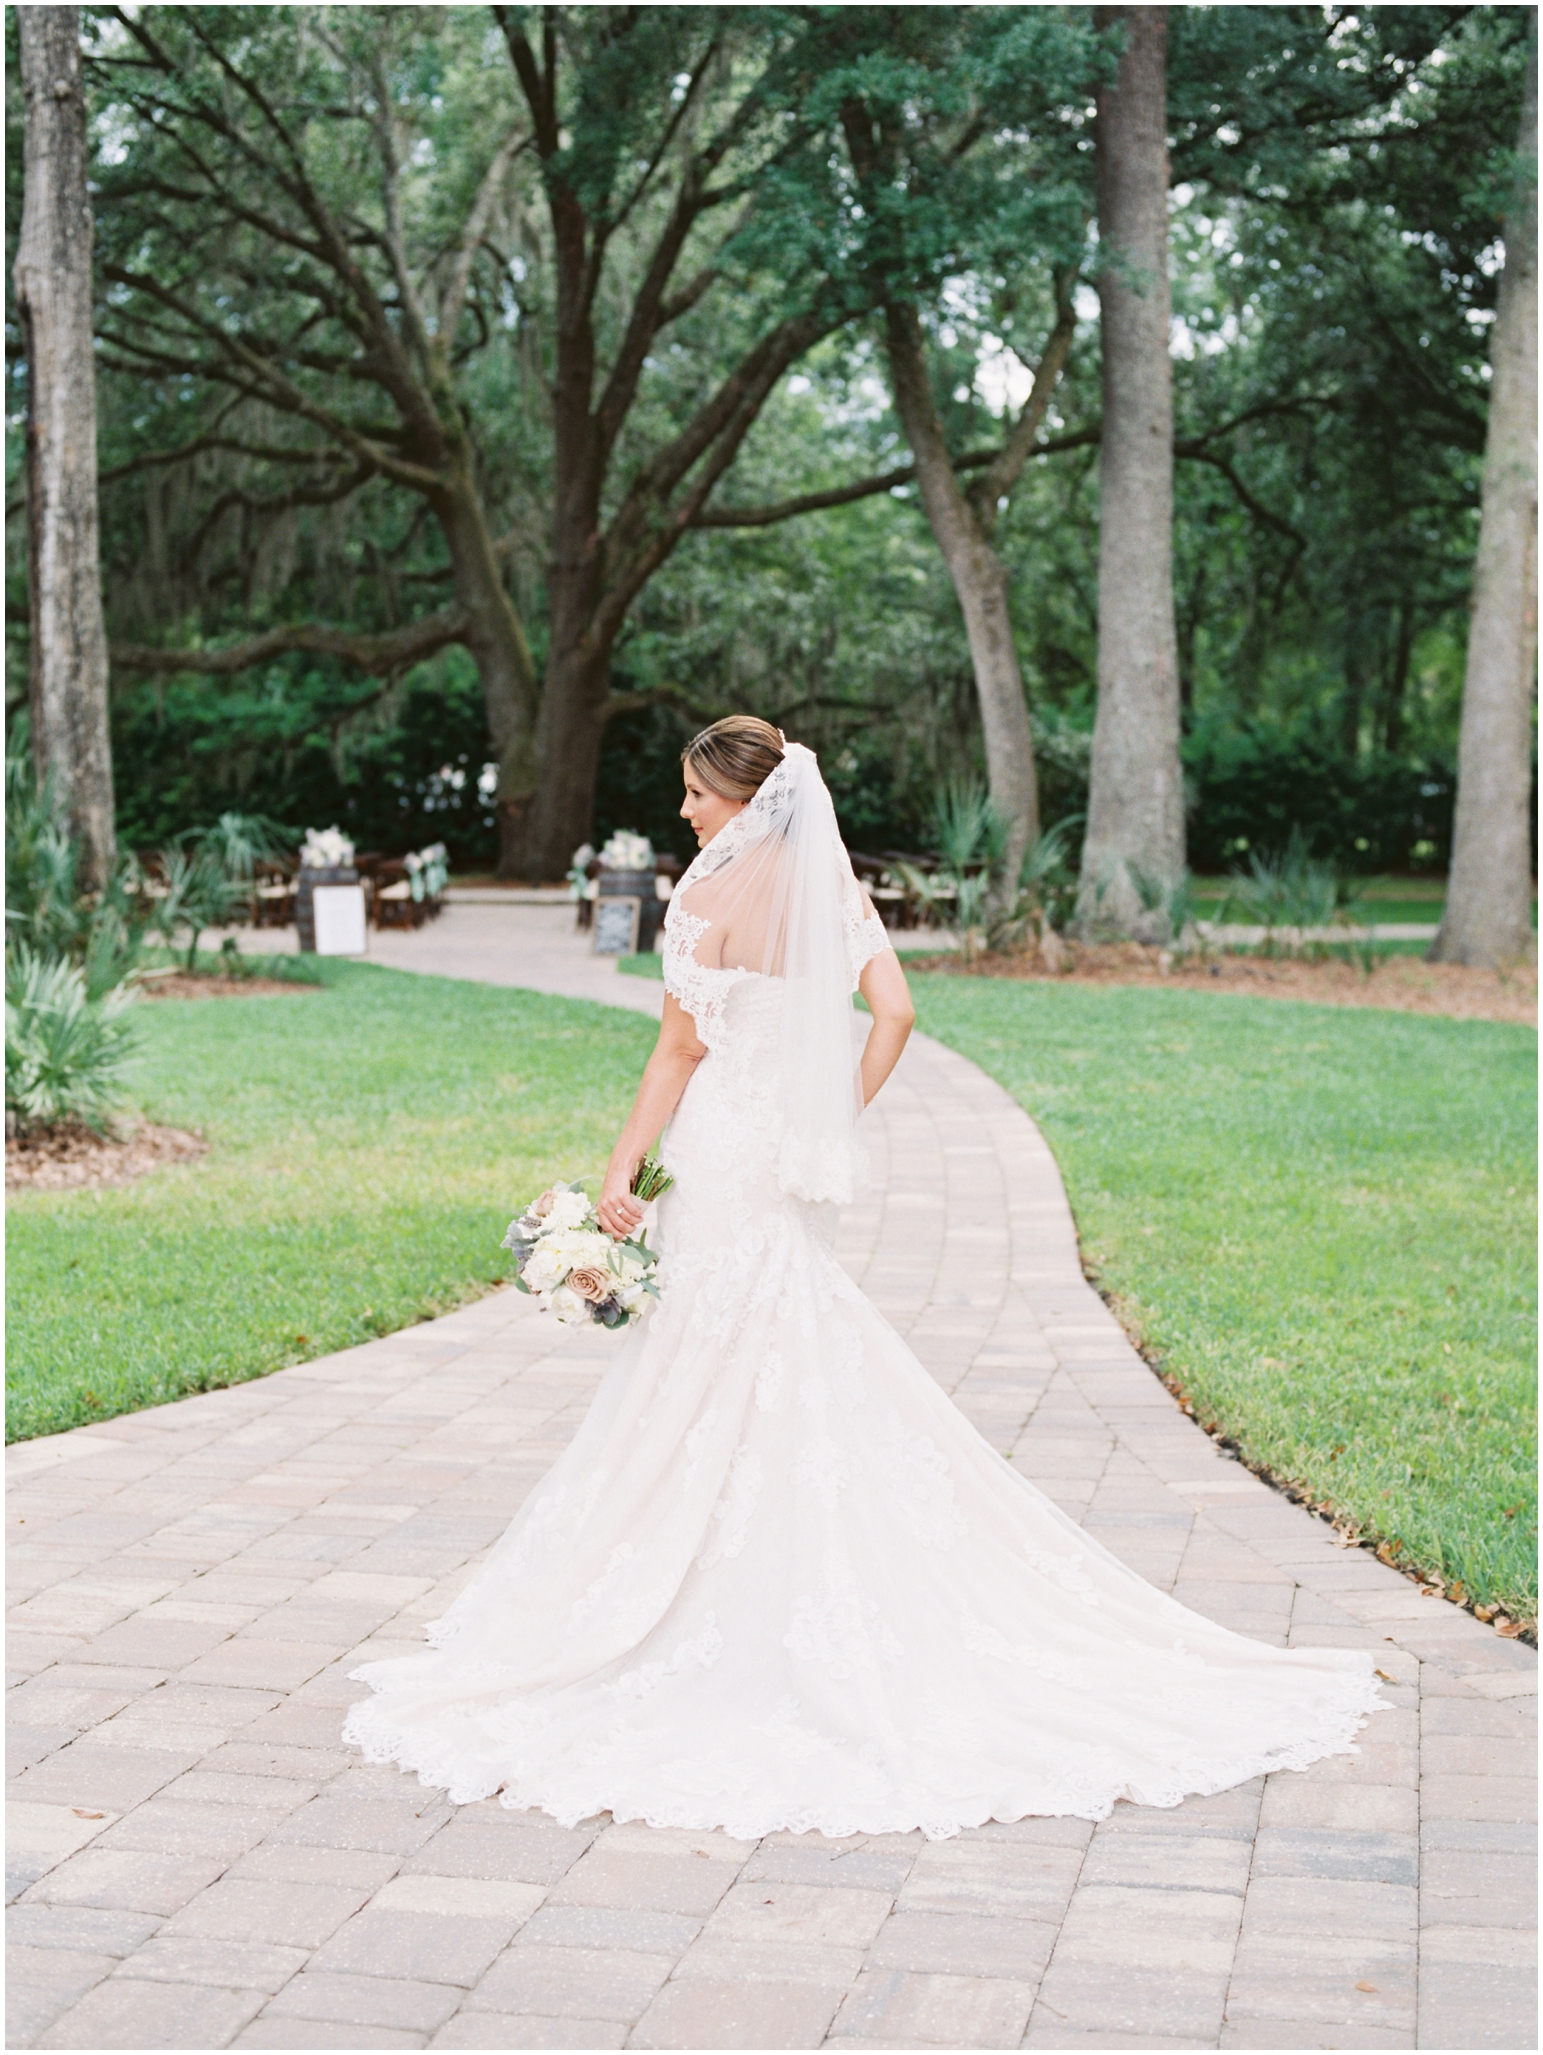 Lisa Silva Photography- Jacksonville, St Augustine, Fernandina Beach, Amelia Island, Ponte Vedra Beach, North East Florida Fine Art Film Photographer- Ashley and Shawn's wedding at bowing oaks plantation_0024.jpg